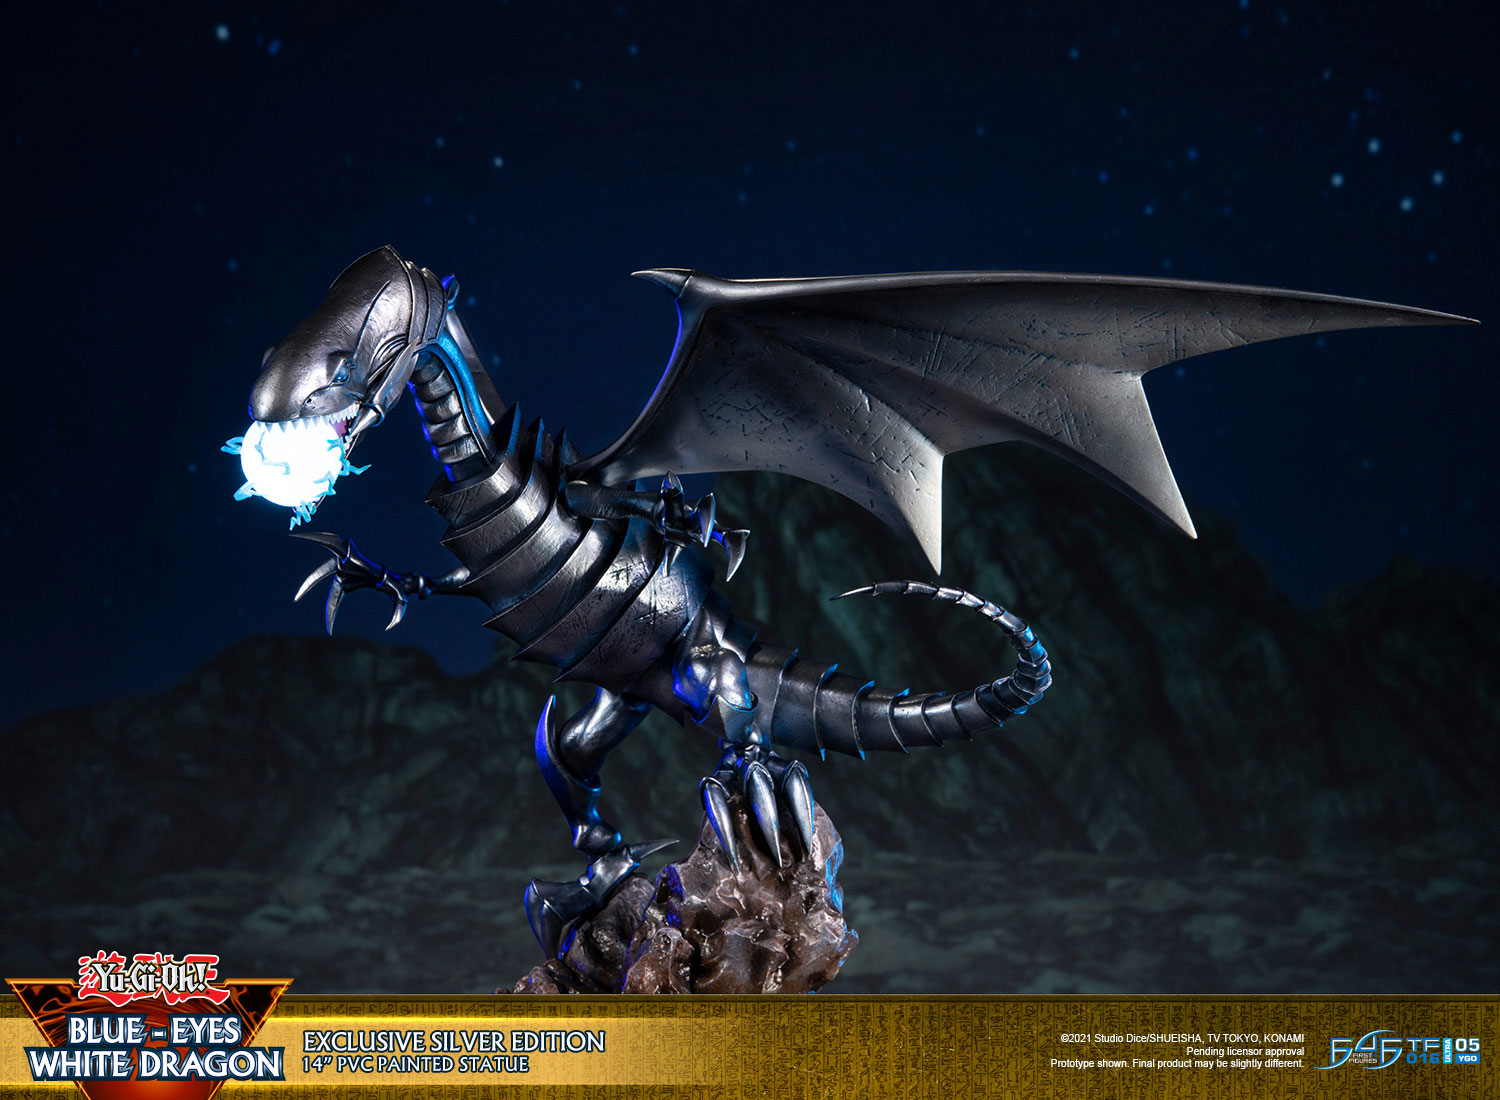 Blue-Eyes White Dragon (Exclusive Silver Edition)